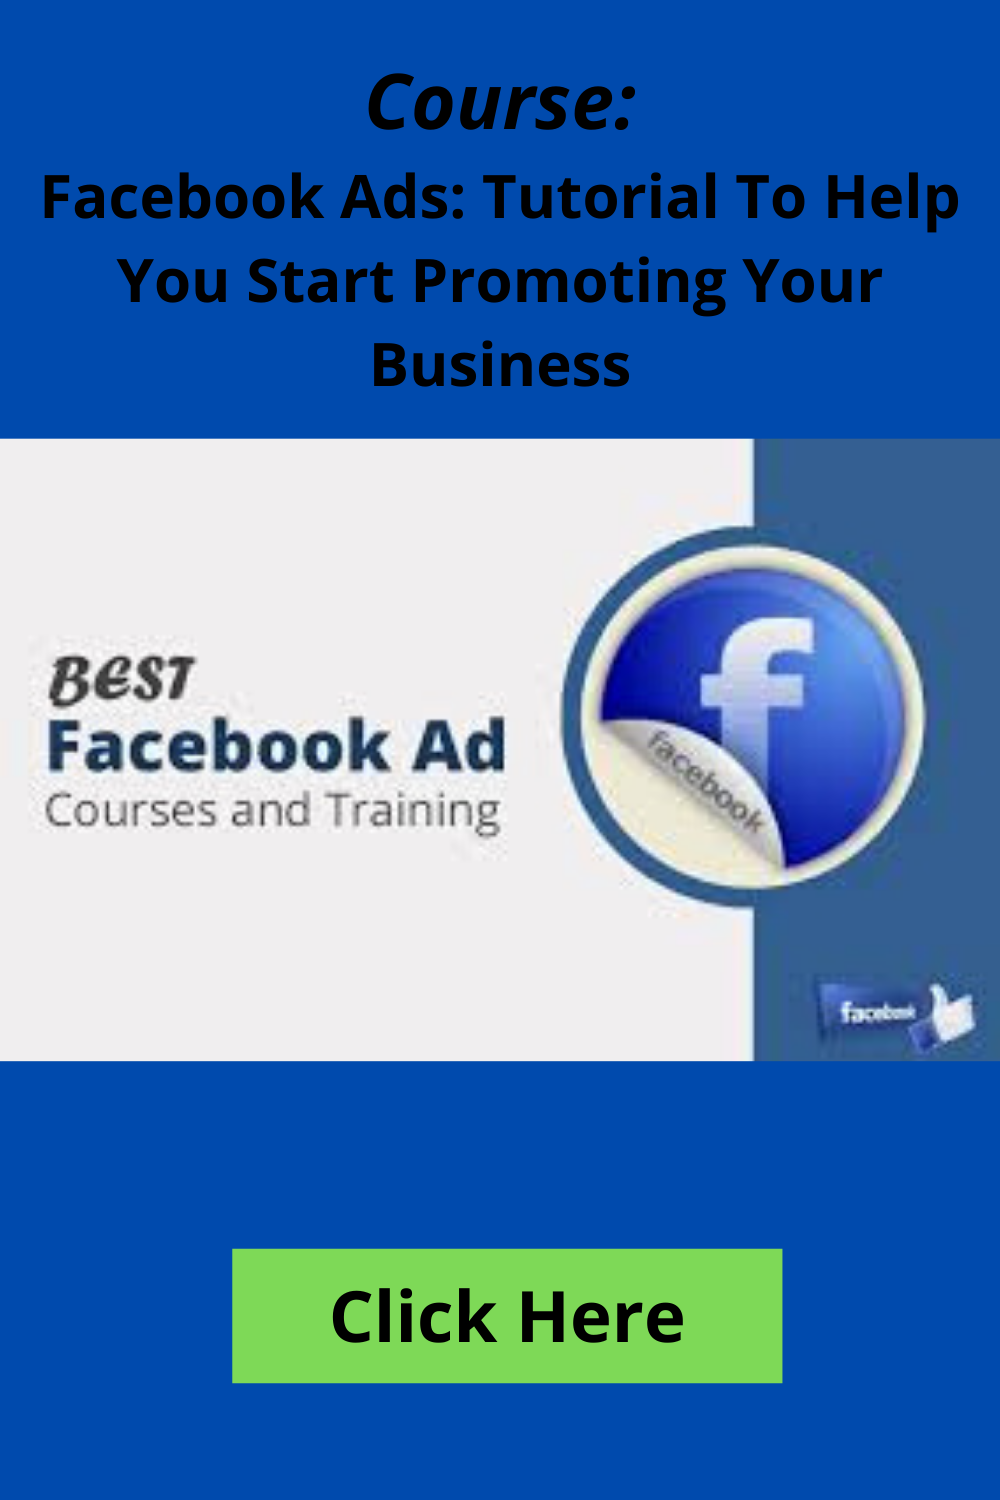 Facebook Ads Tutorial Learn How To Advertise On Facebook In 2020 Facebook Ad Facebook Ads Manager Facebook Ads Guide